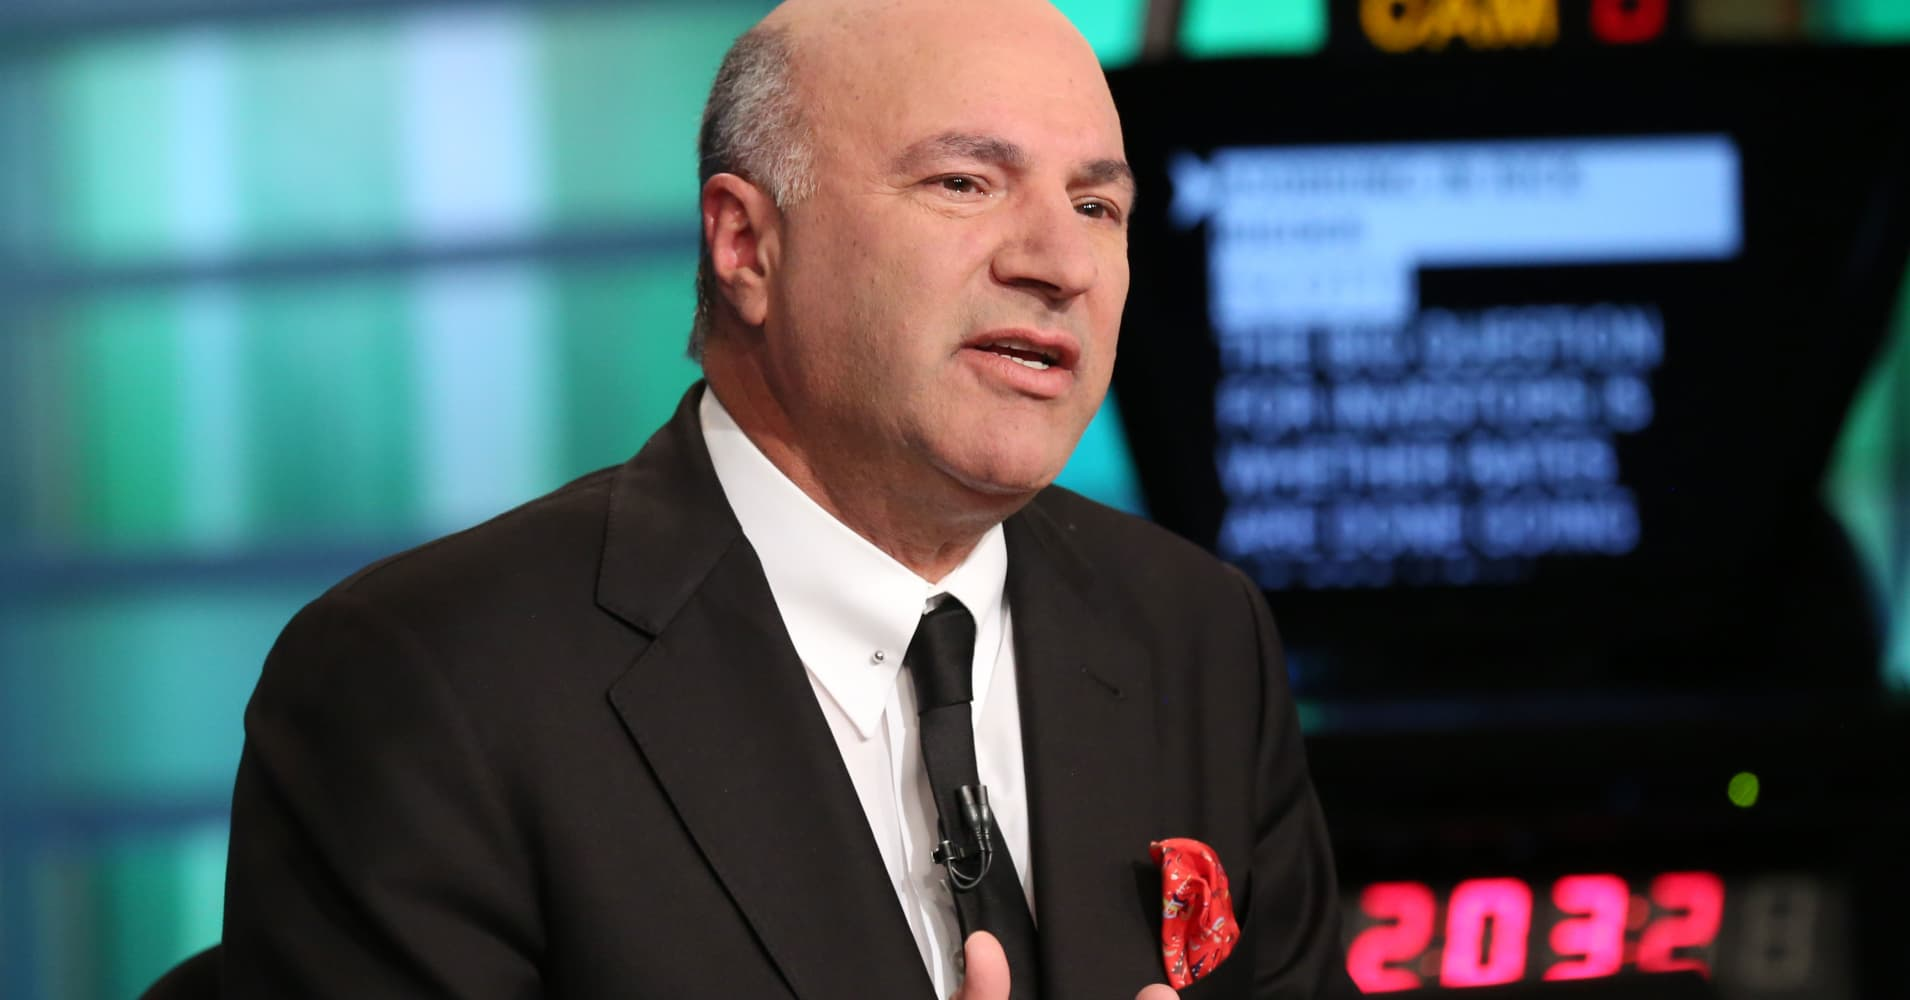 Kevin O'Leary: If you want to get rich, start working 25 hours a day, 7 days a week